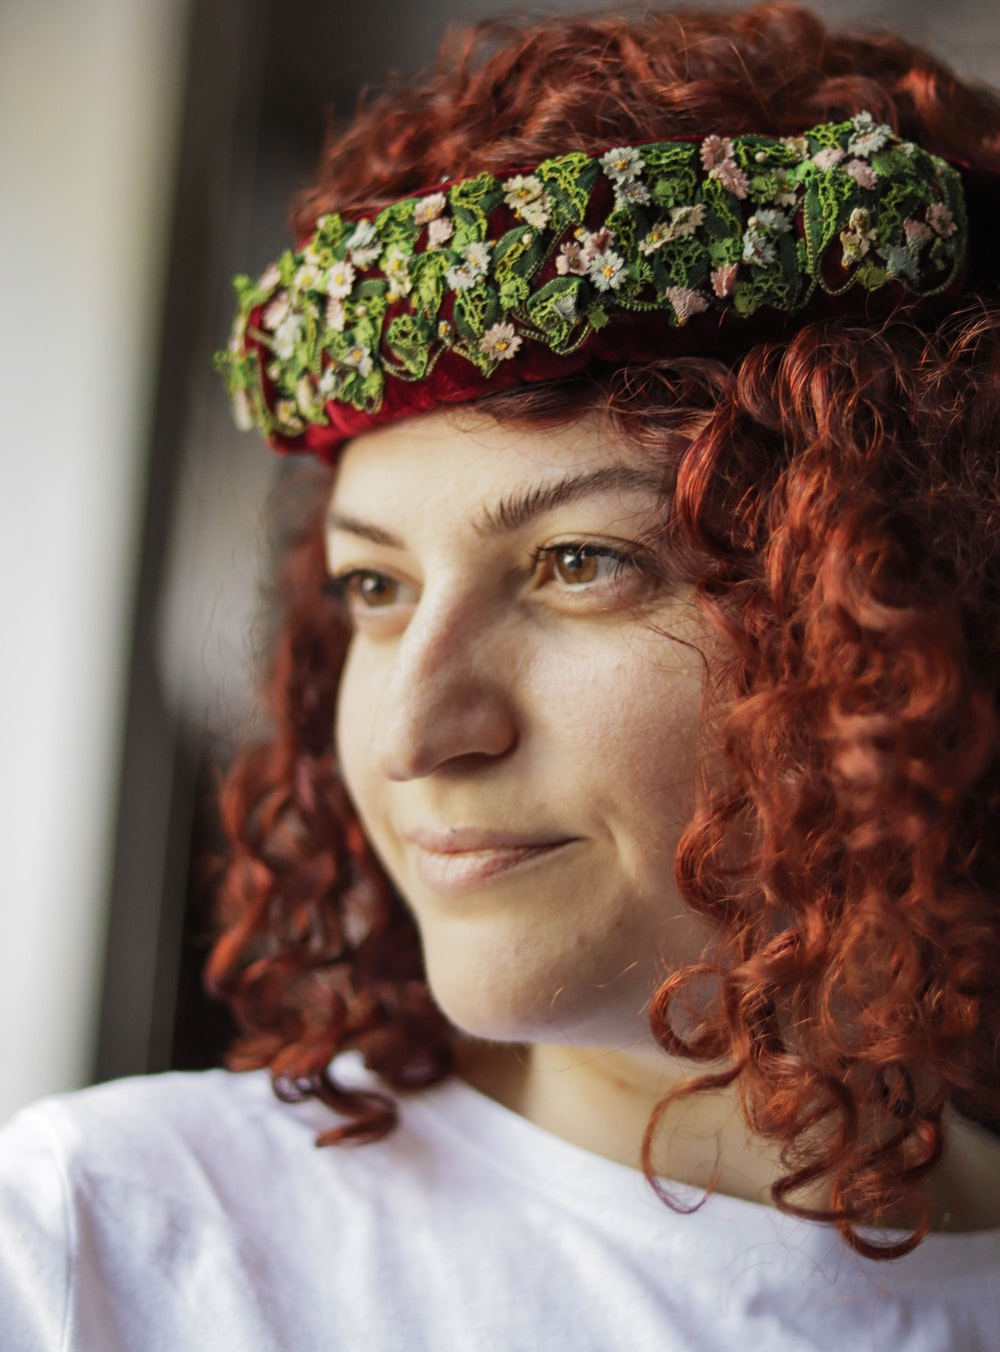 woman in white shirt wearing green and brown floral headdress